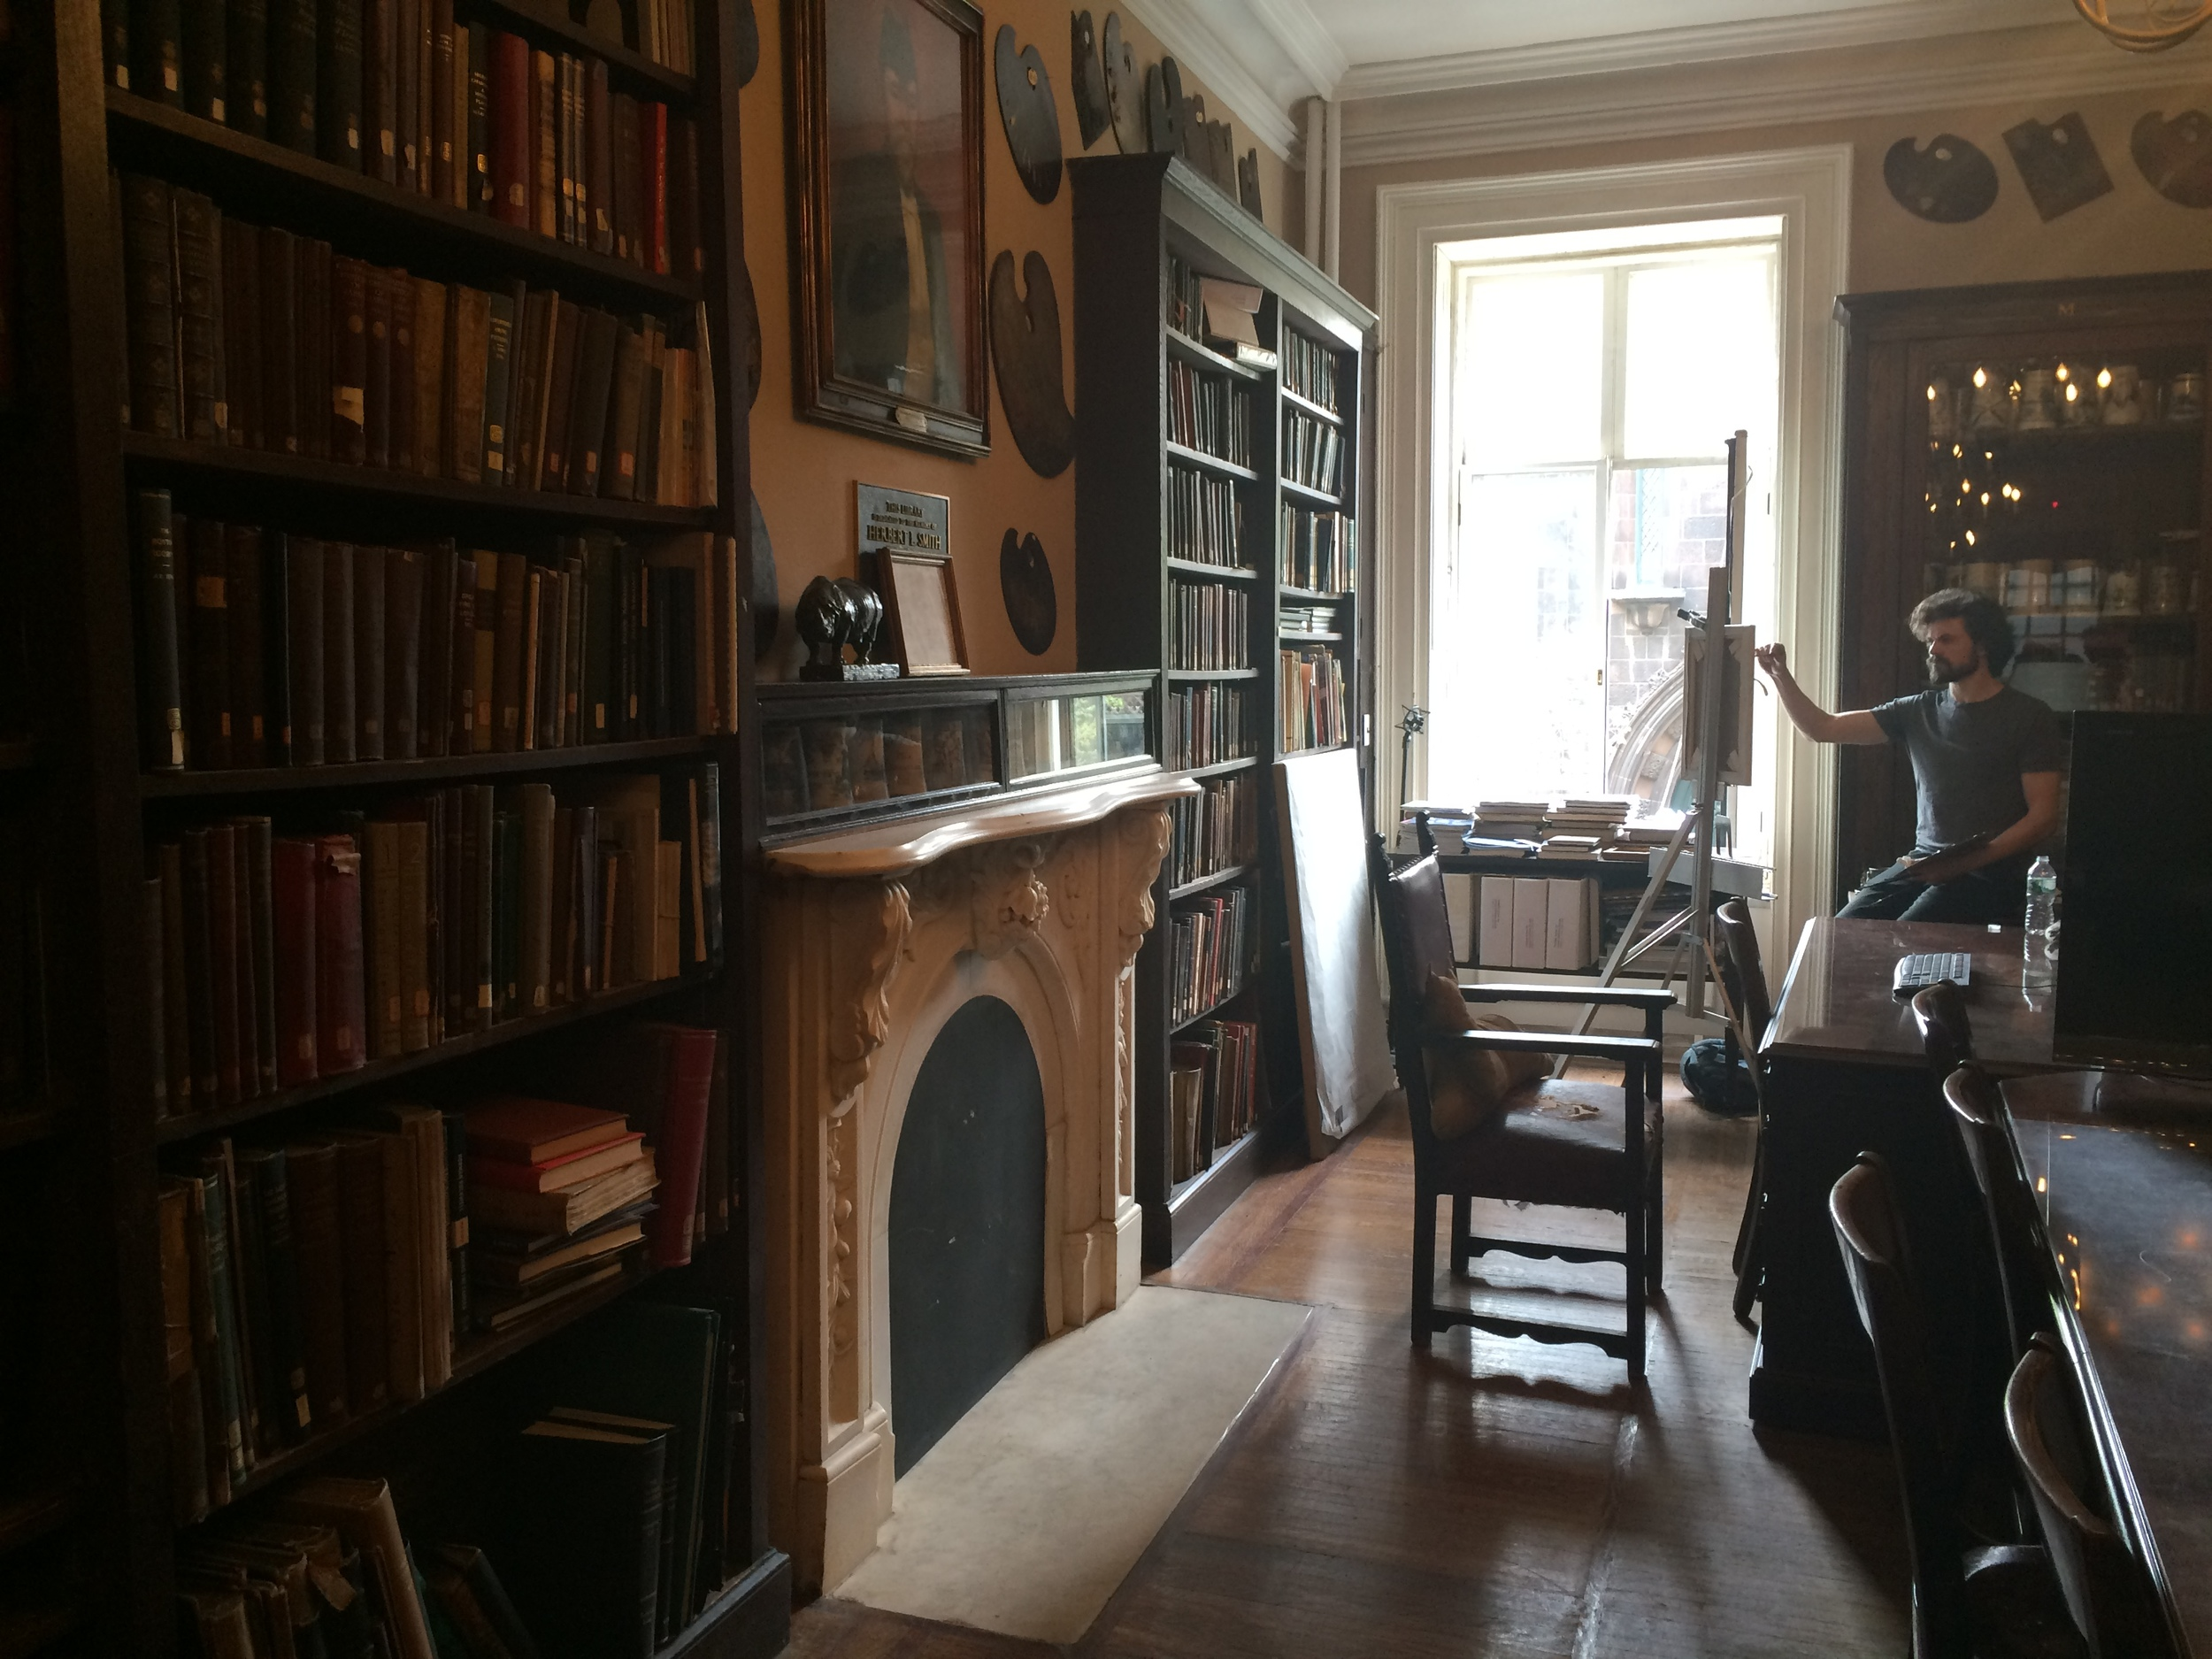 Sketch Class in The Library, at The Salmagundi Club of New York, 2015